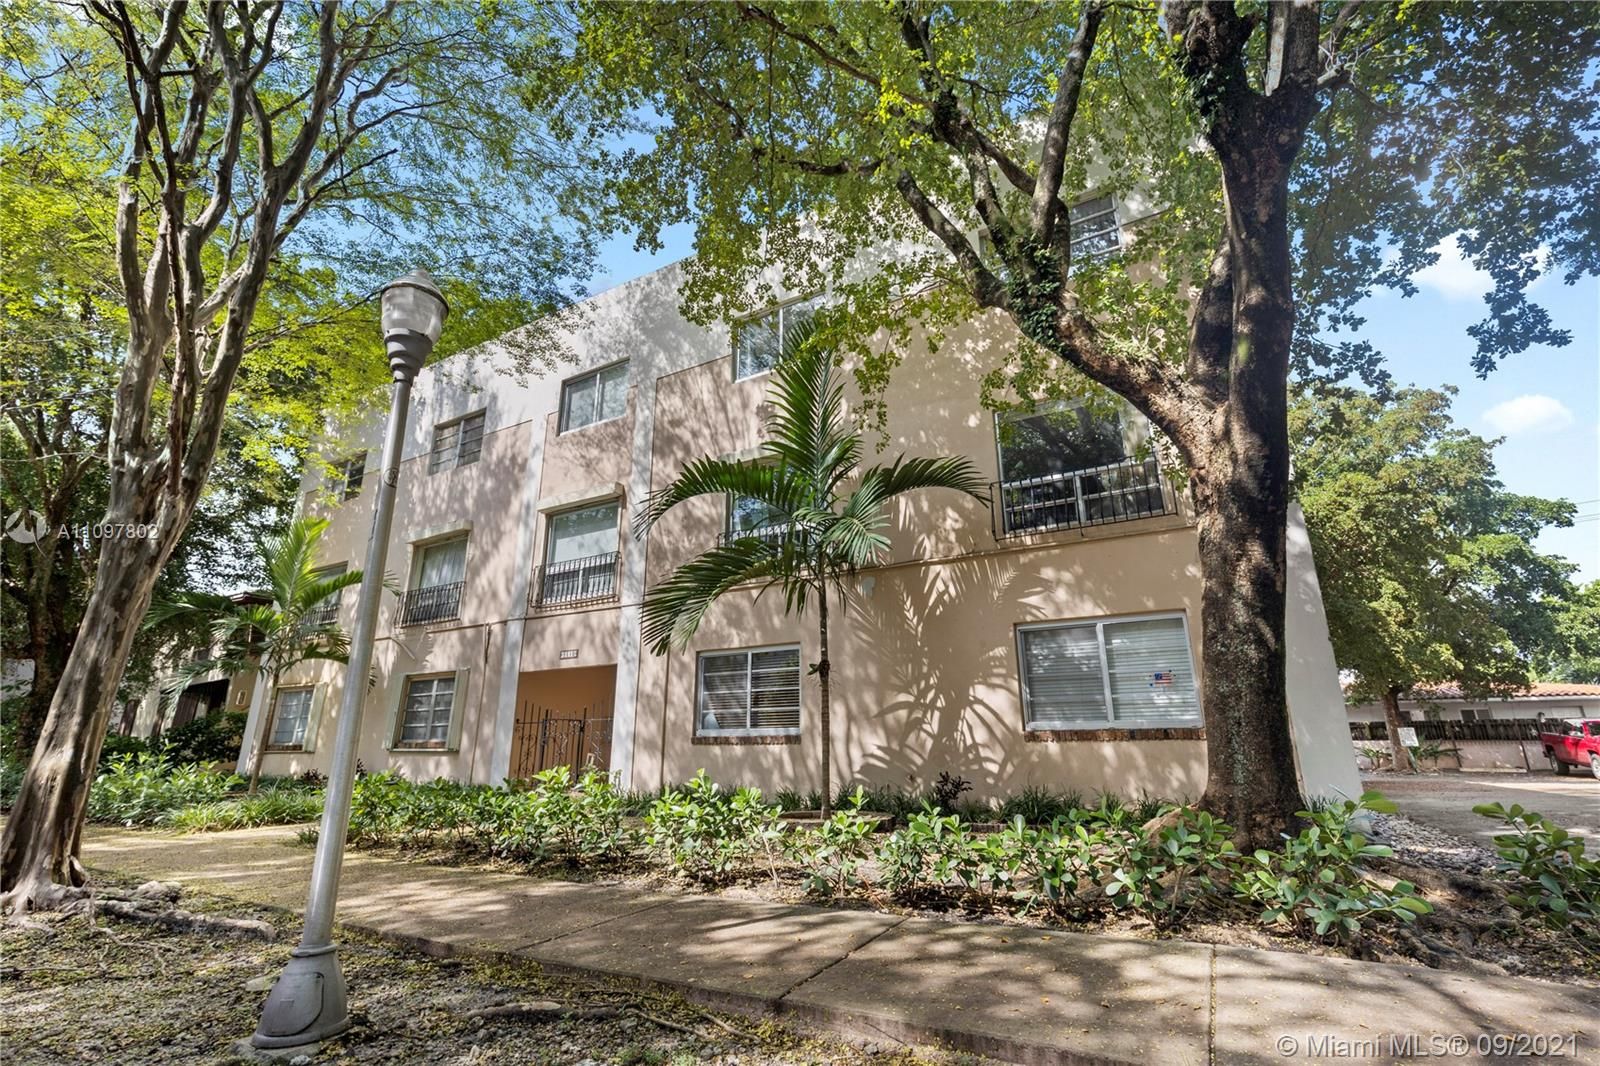 Centrally located, updated, 2 bedroom unit in the heart of Coral Gables. Two-Story townhouse style condo with updated kitchen, living room and half bathroom on first floor. Upstairs has 2 large bedrooms, an updated bathroom and washer/dryer.  Enjoy your coffee from your balcony overlooking the treelined streets. One assigned parking space and plenty of guest parking. Blocks from Downtown Coral Gables. Low monthly dues. Currently rented month to month.